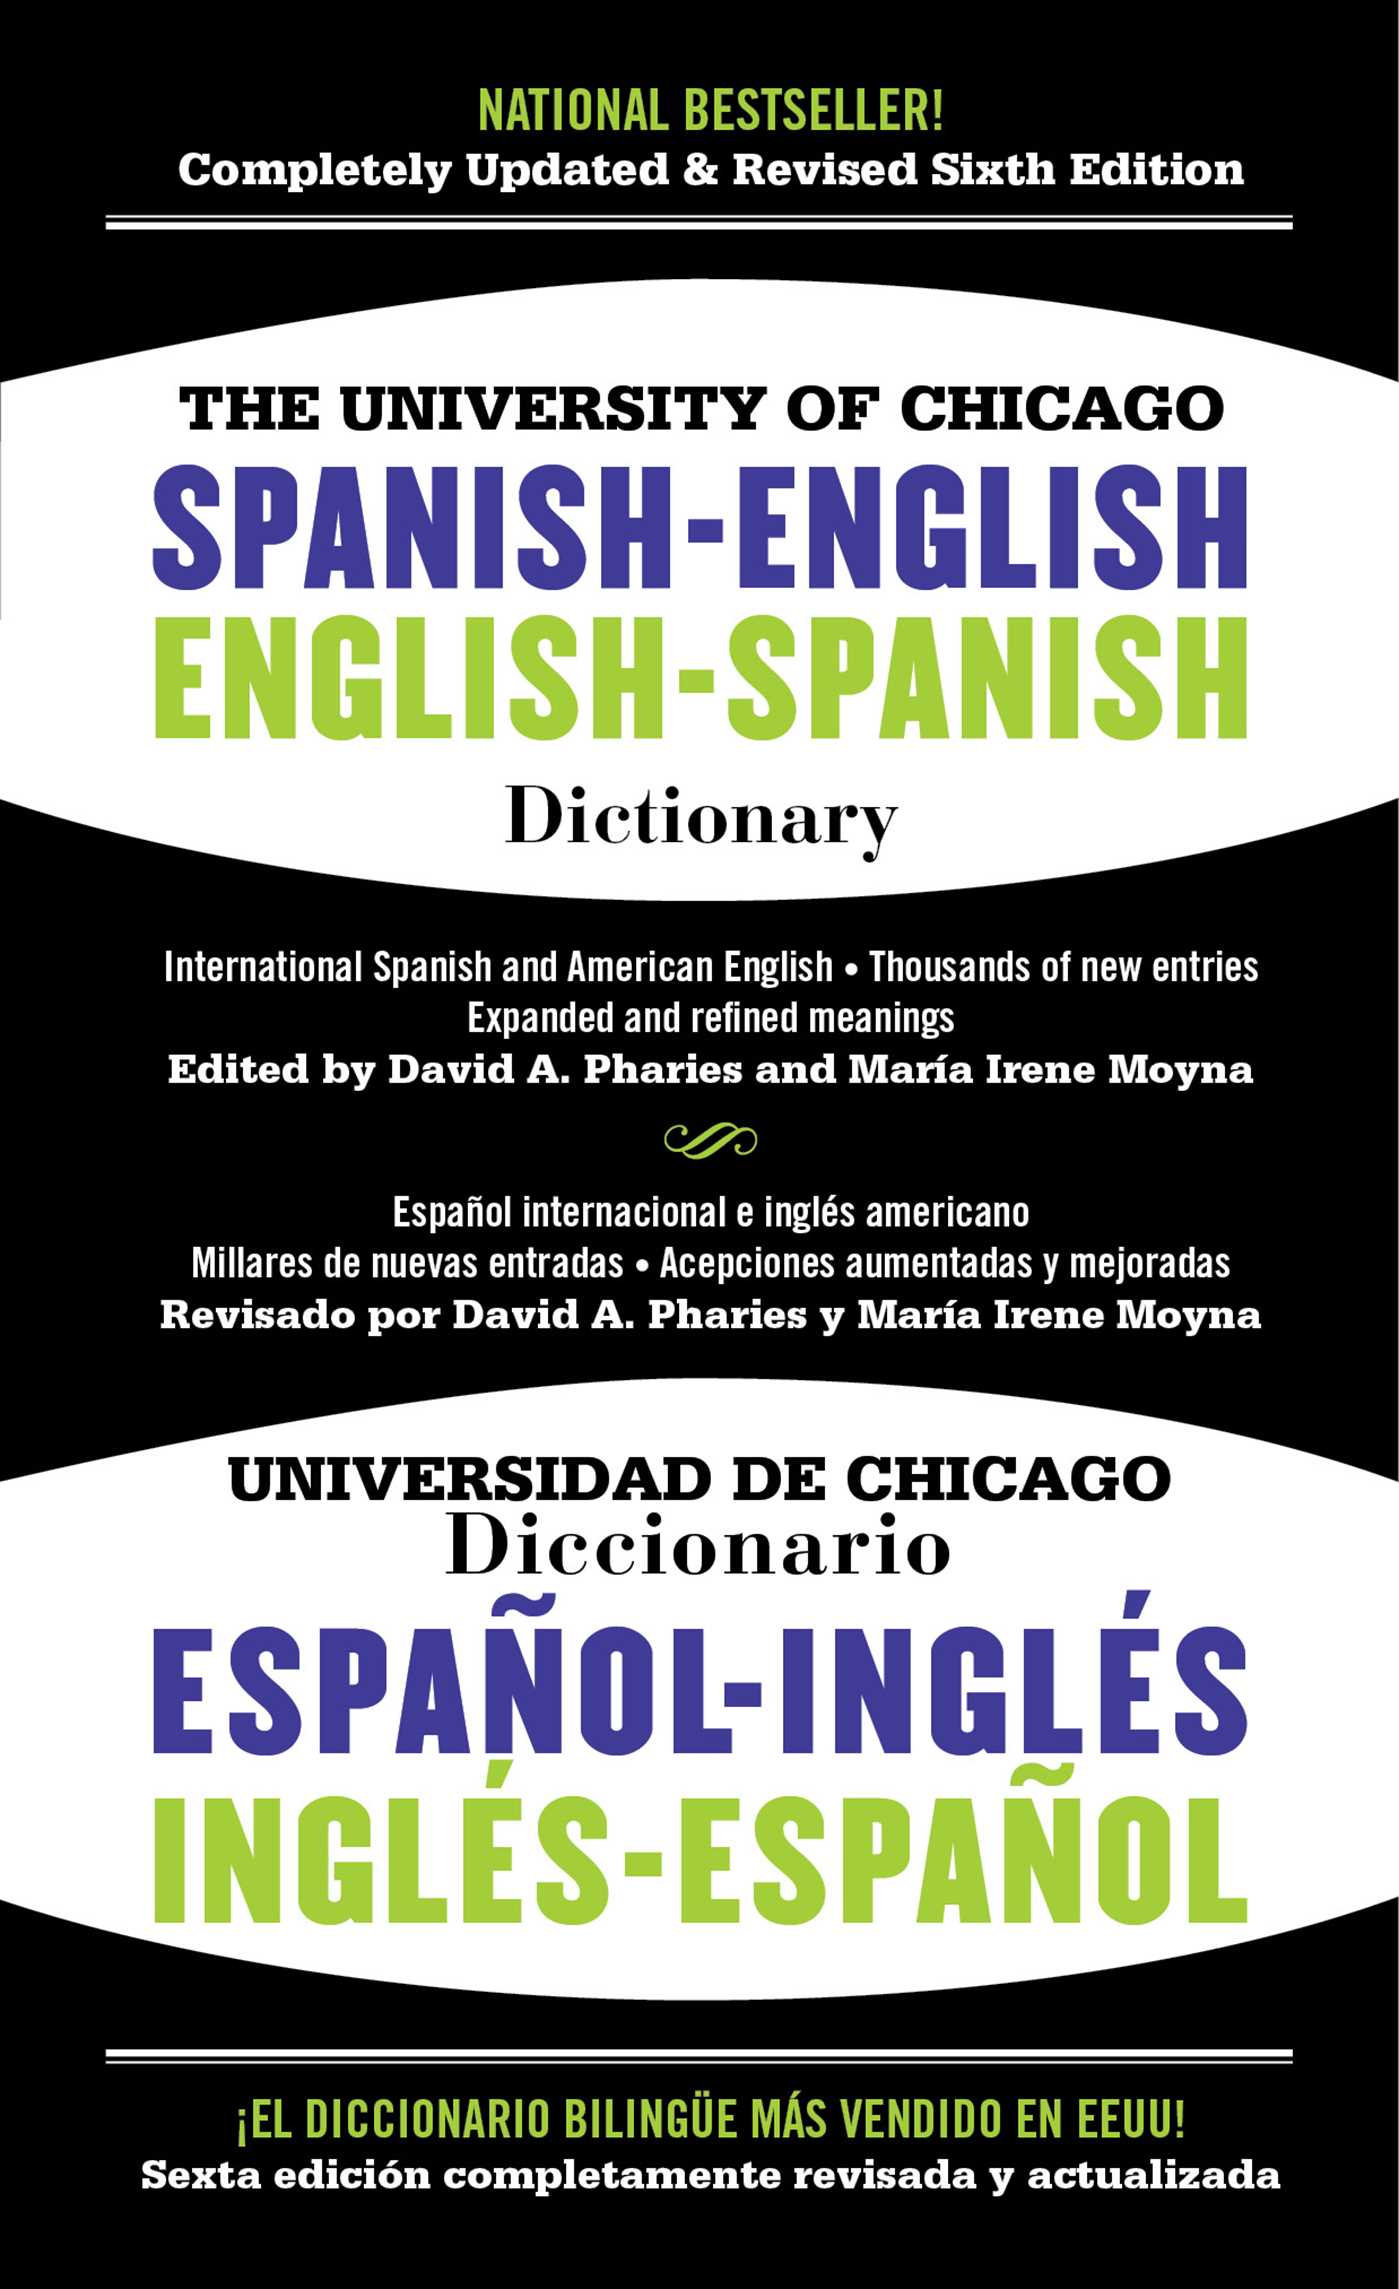 Book Cover Image (jpg): The University of Chicago Spanish-English  Dictionary, 6th Edition